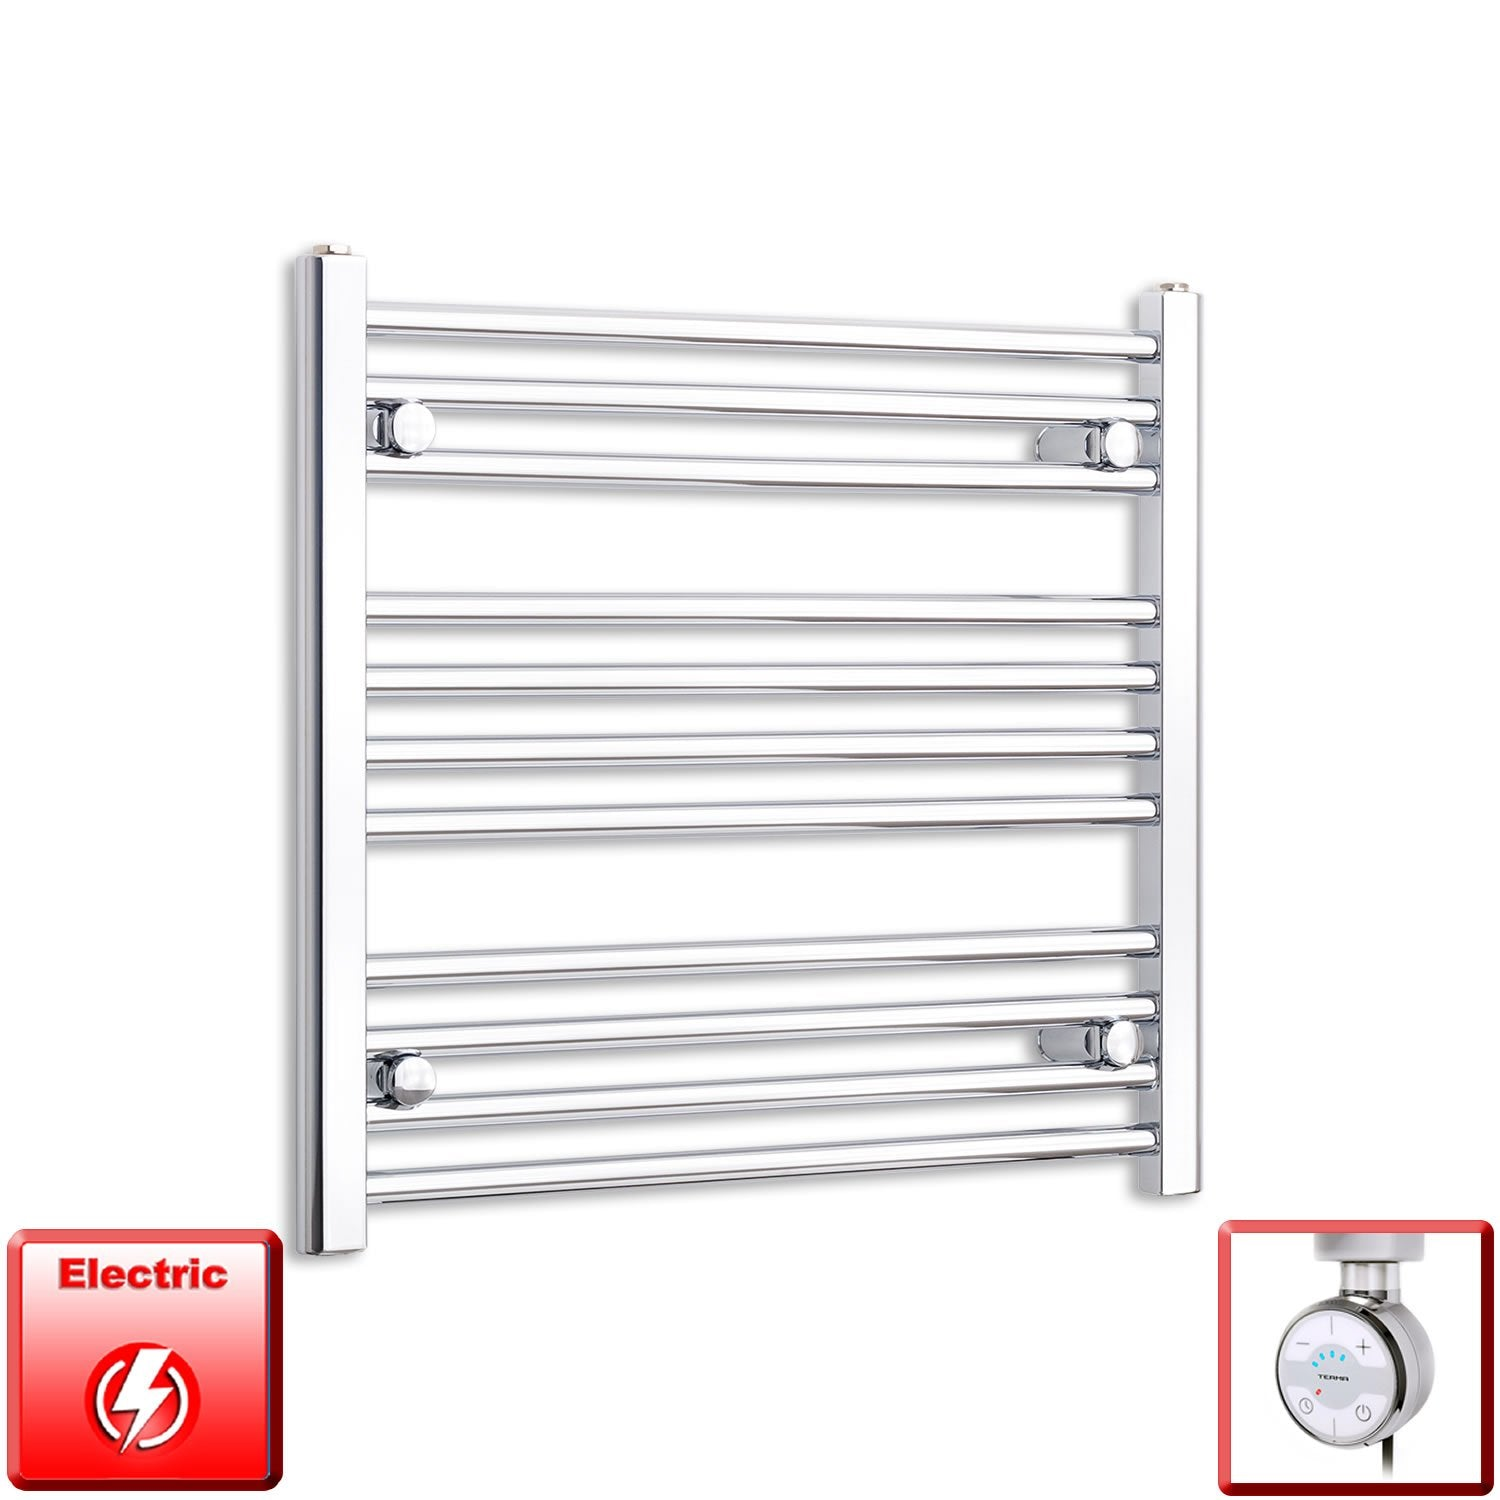 650mm Wide 600mm High Flat Chrome Pre-Filled Electric Heated Towel Rail Radiator HTR,MOA Thermostatic Element